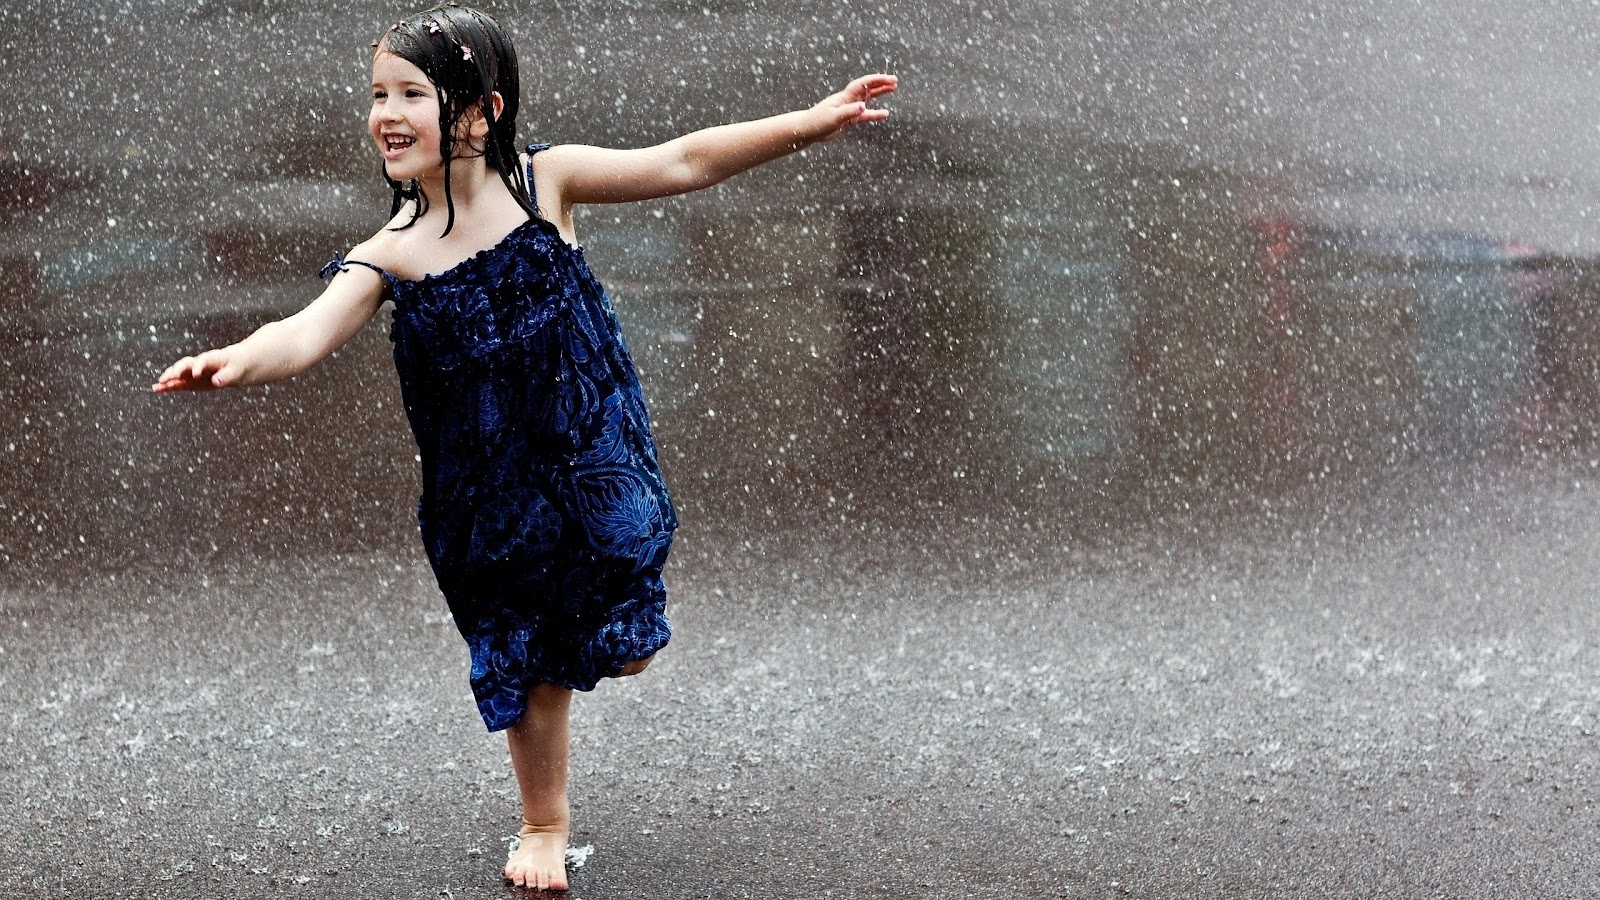 Little-Cute-Girl-Playing-In-Rain.jpg